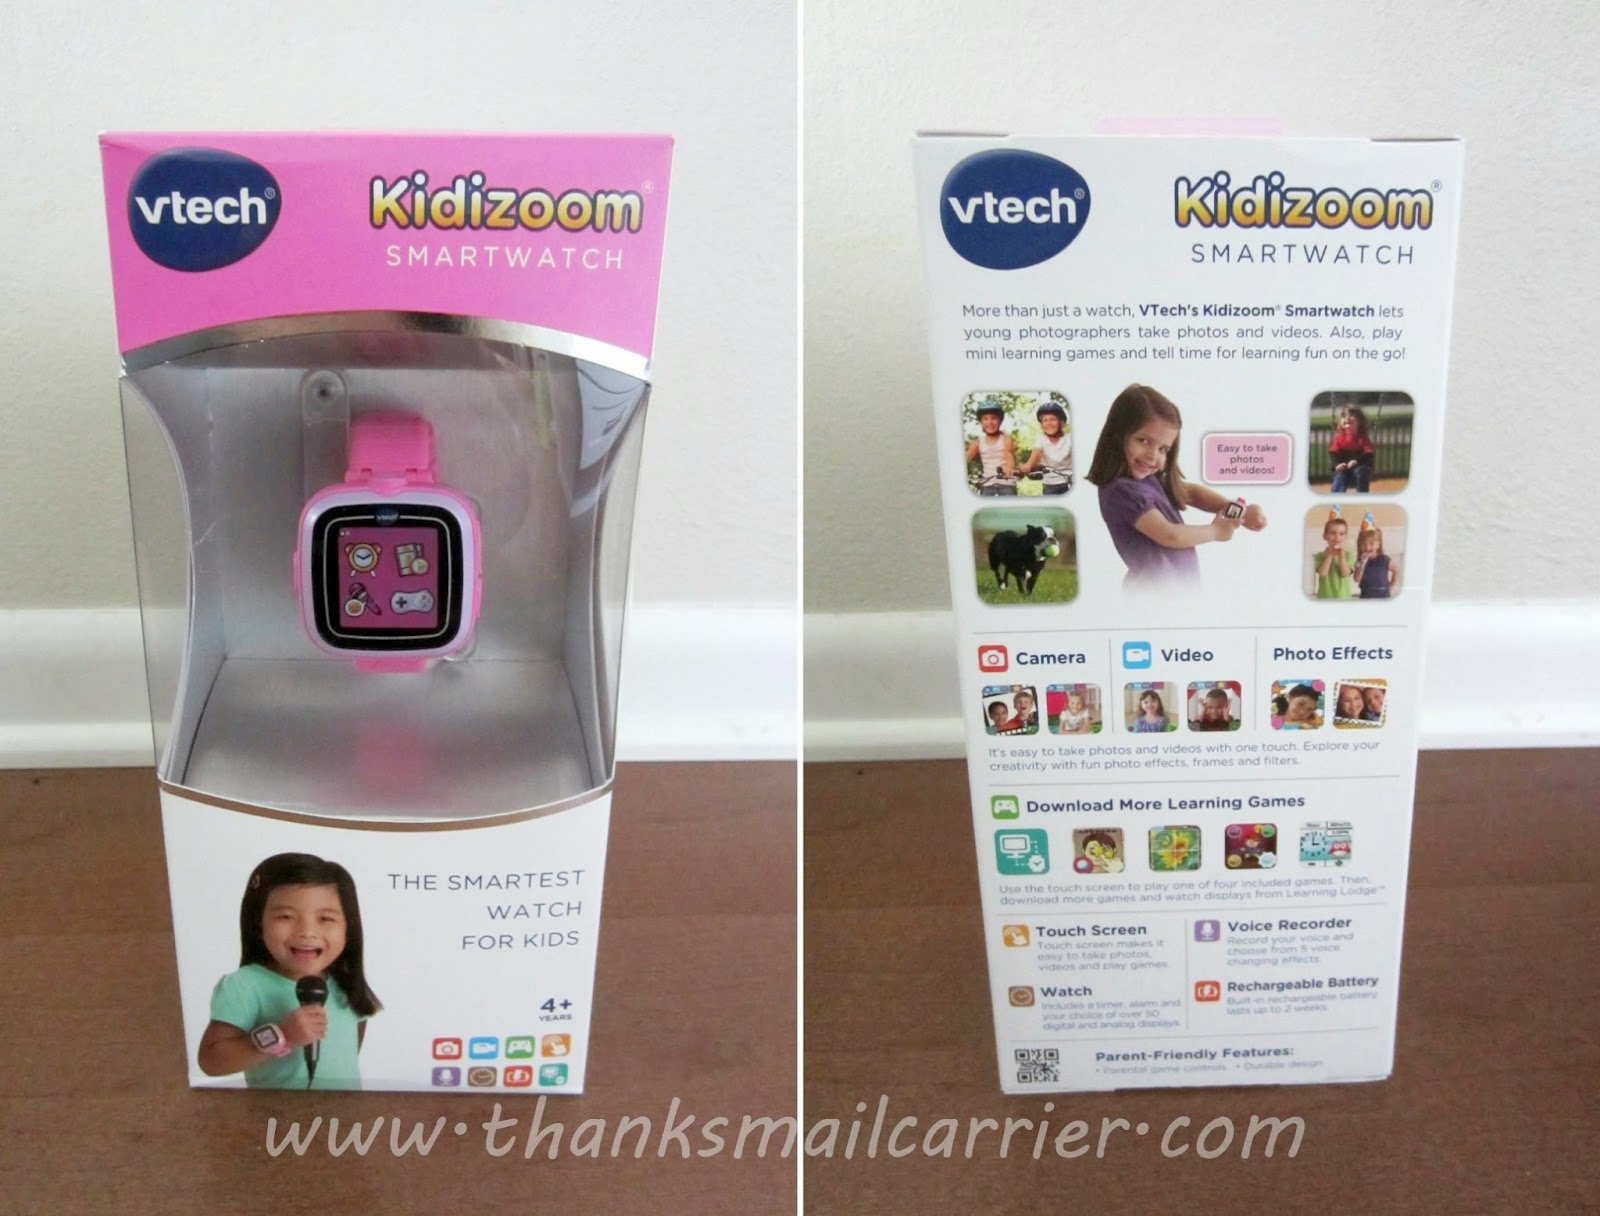 VTech Kidizoom watch